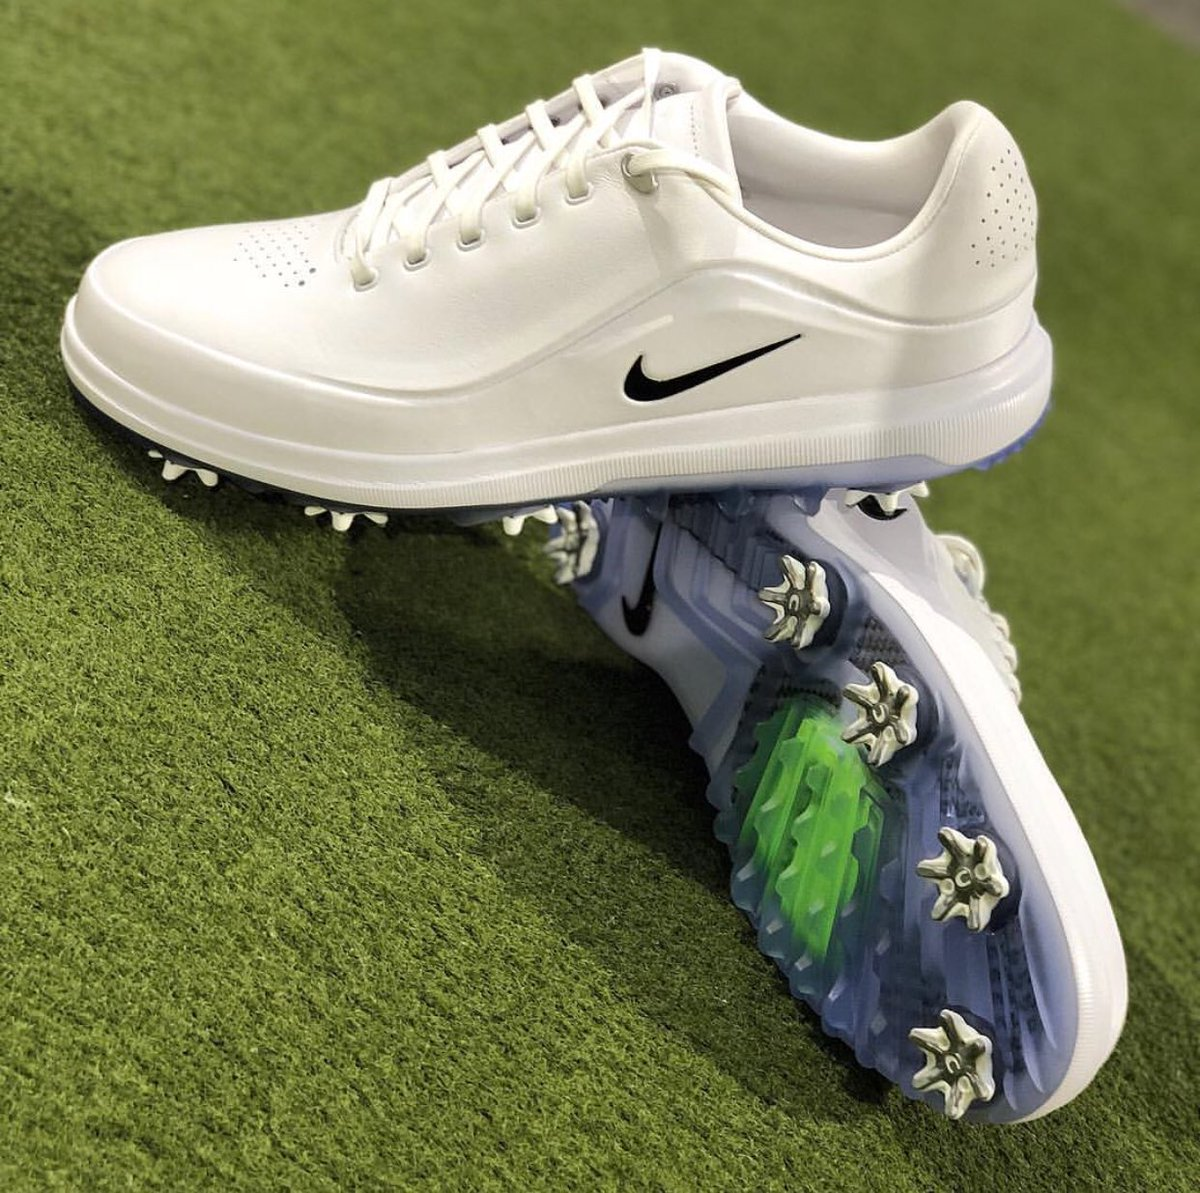 c823d5372c14 Love my new  nikegolf Air Zoom Precision shoes!! 🔥🔥🔥🔥🔥 ⠀ HIT❤️if you  like the look of these! https   t.co KOTnRVFbwh